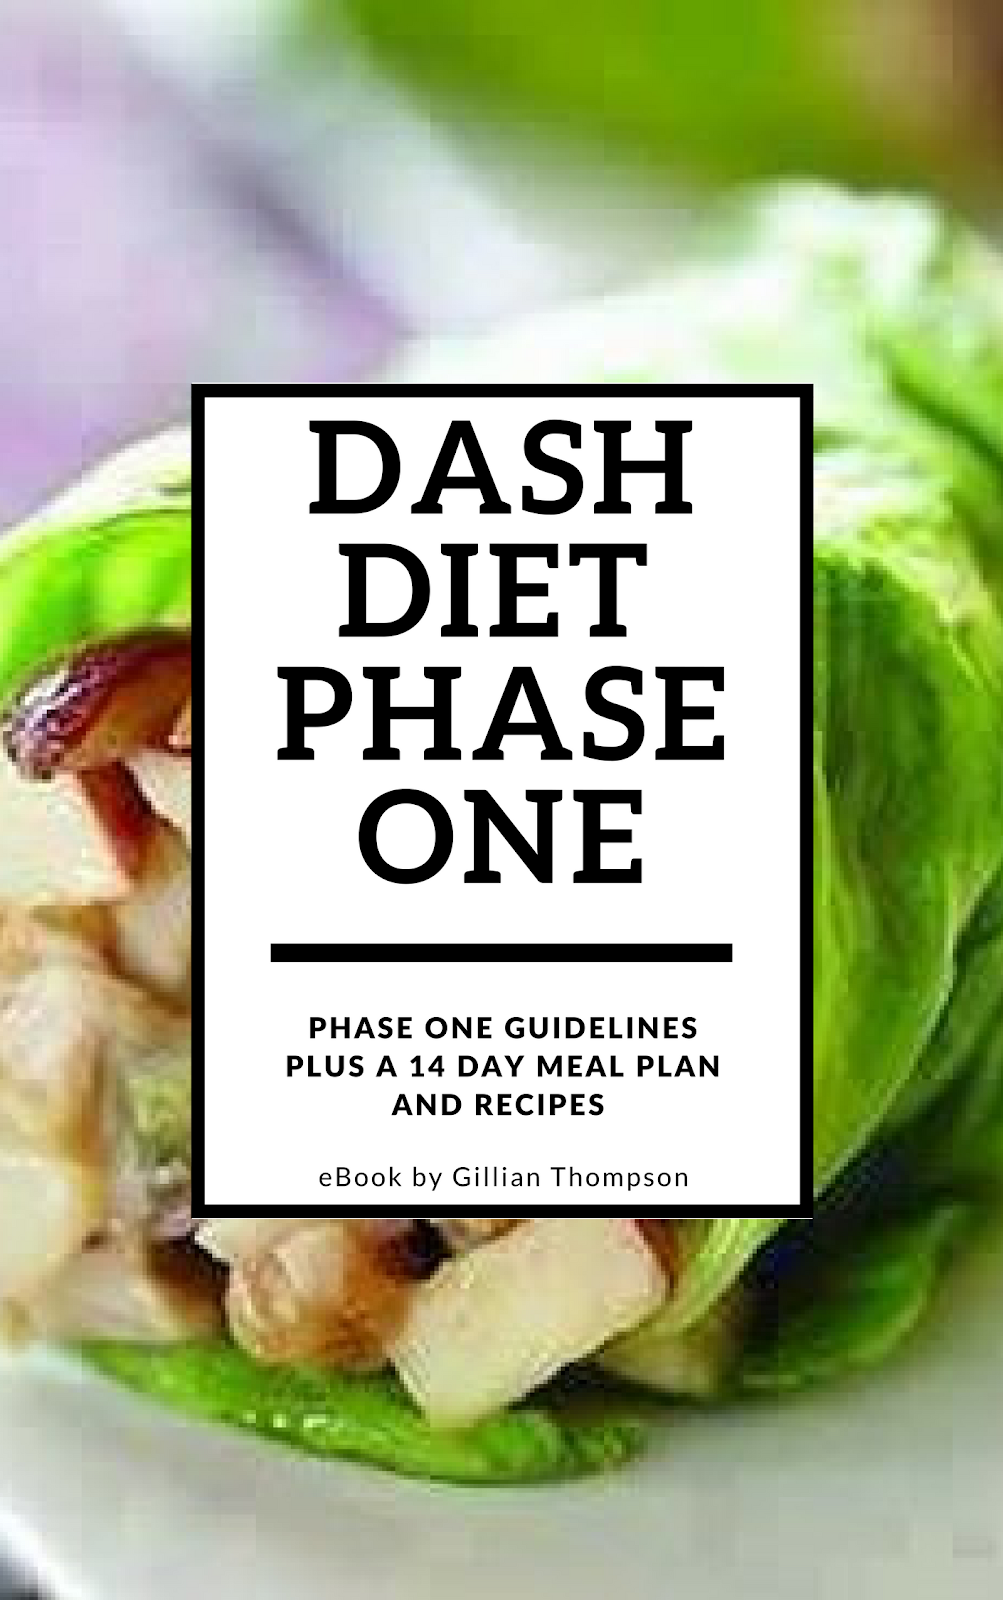 The Complete DASH Diet Phase One eBook